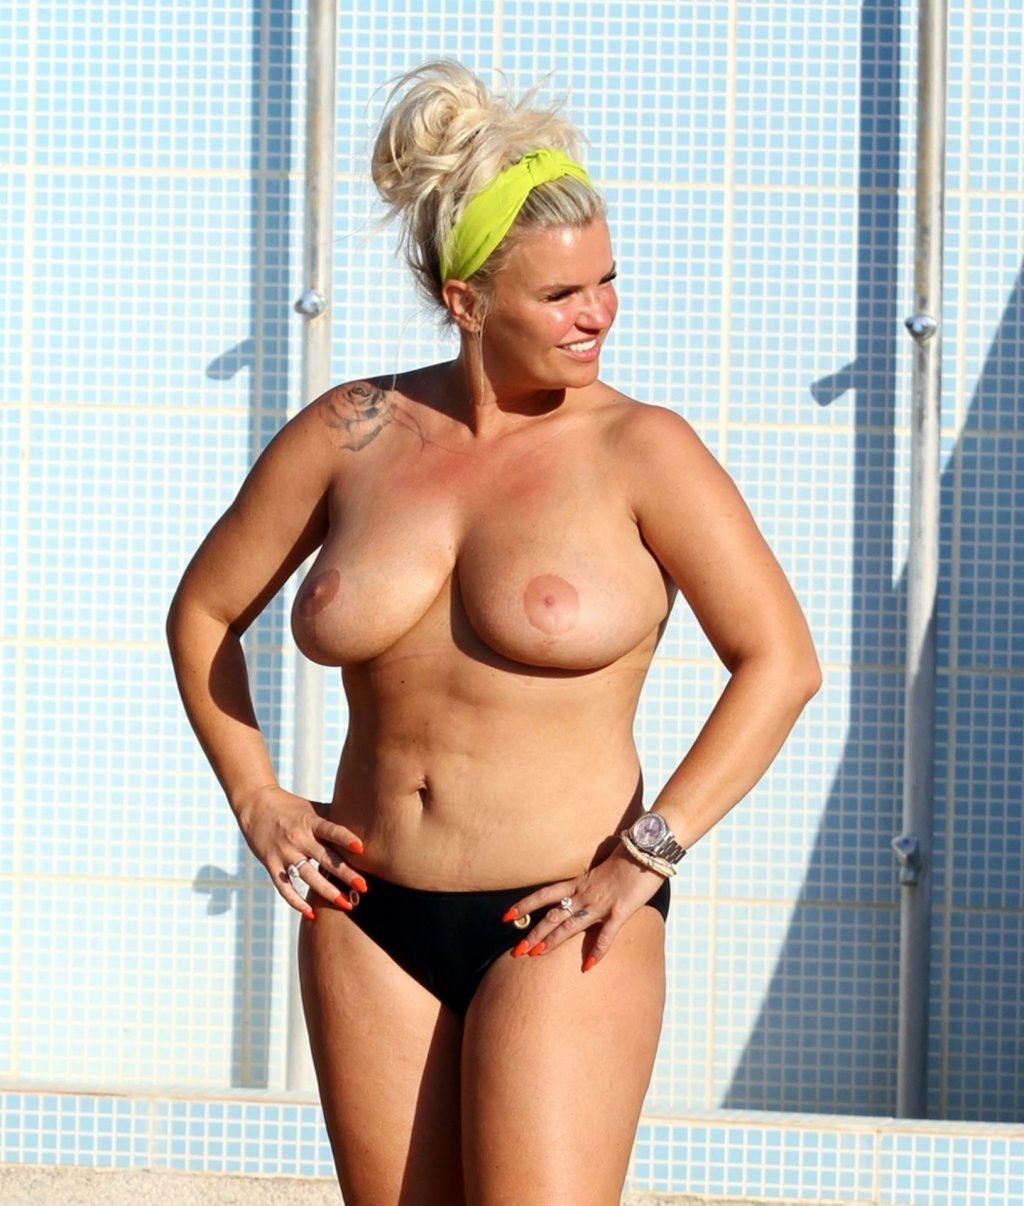 Kerry katona taking her pics for adult site onlyfans